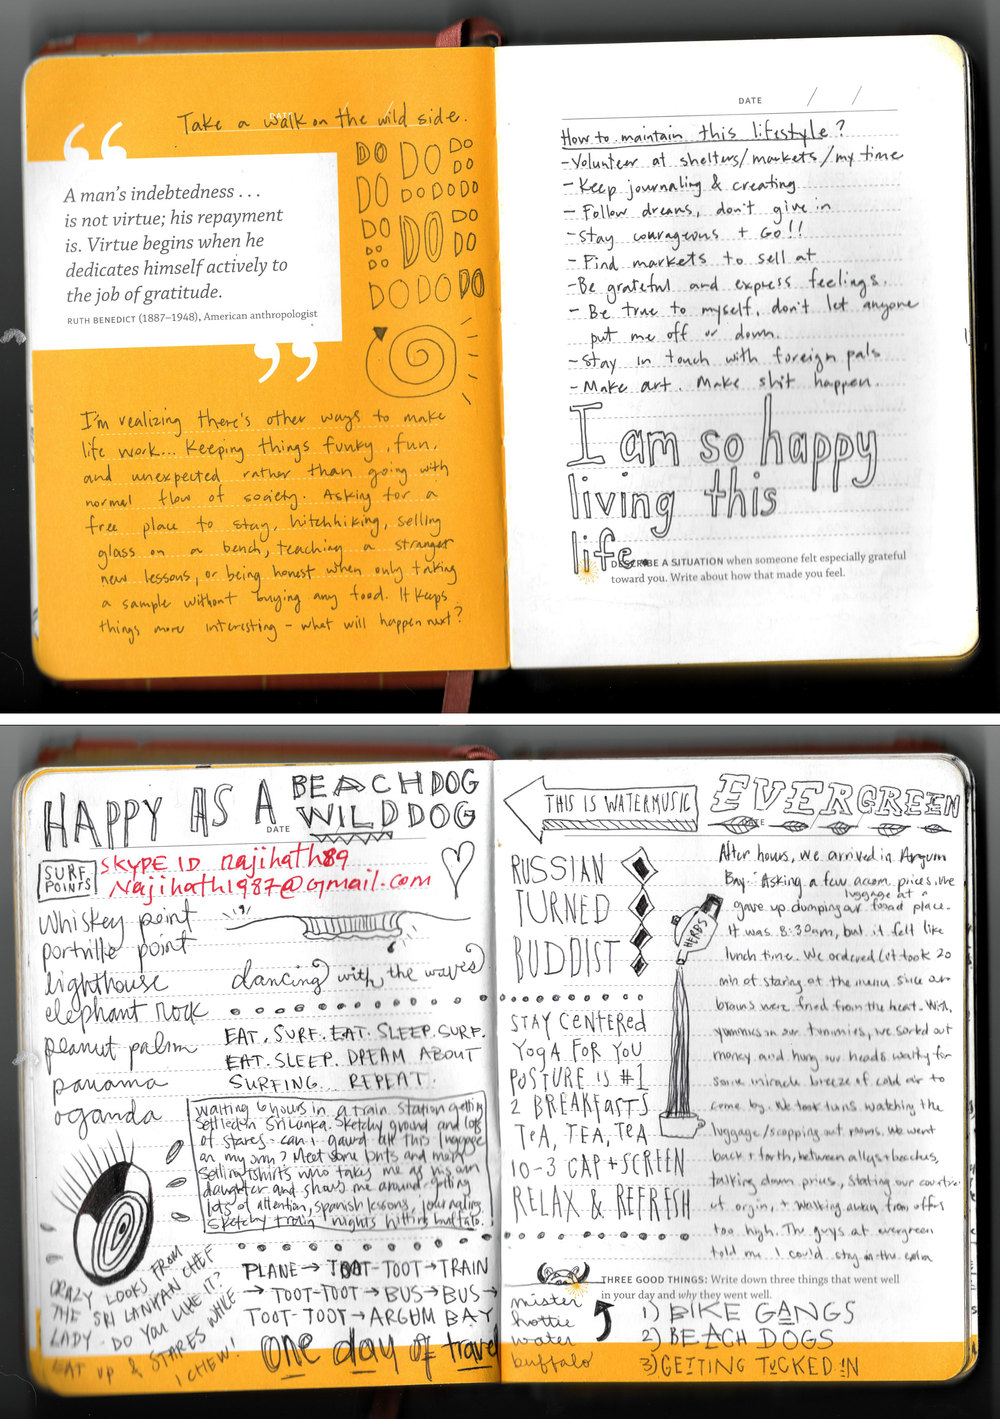 Excerpts from Emily's most prized travel possession: her journal